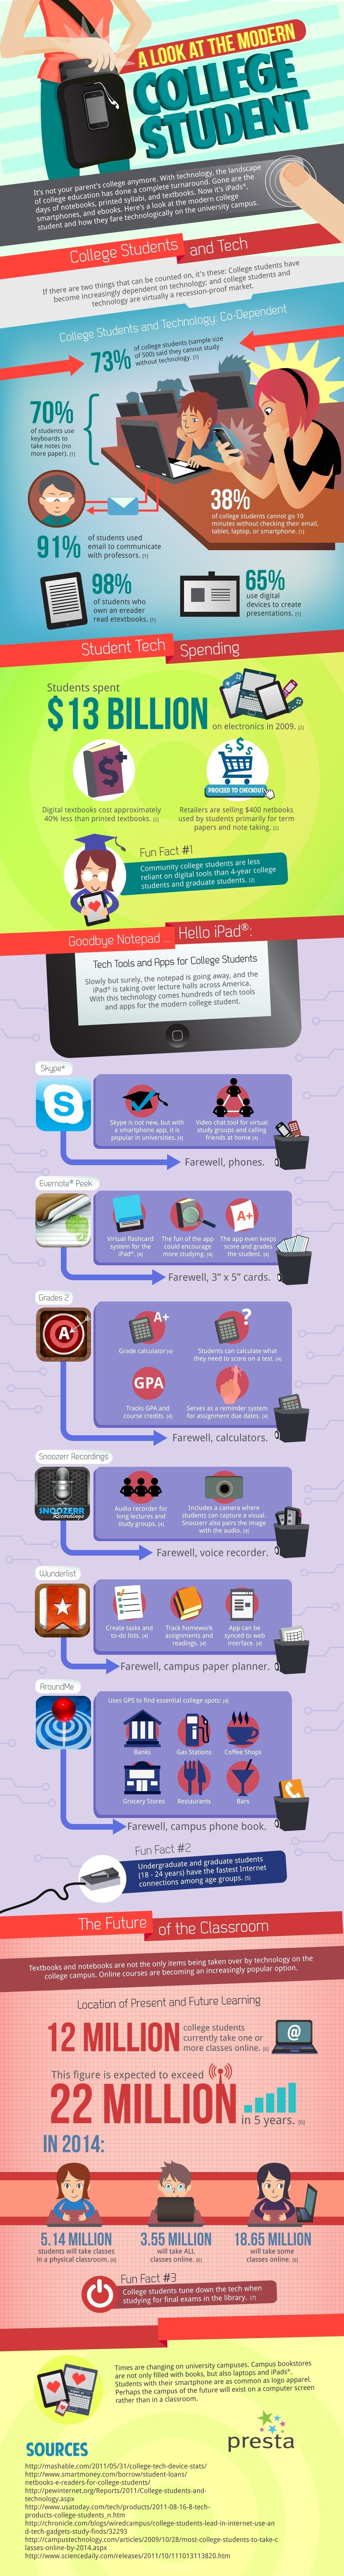 The Modern College Student Infographic